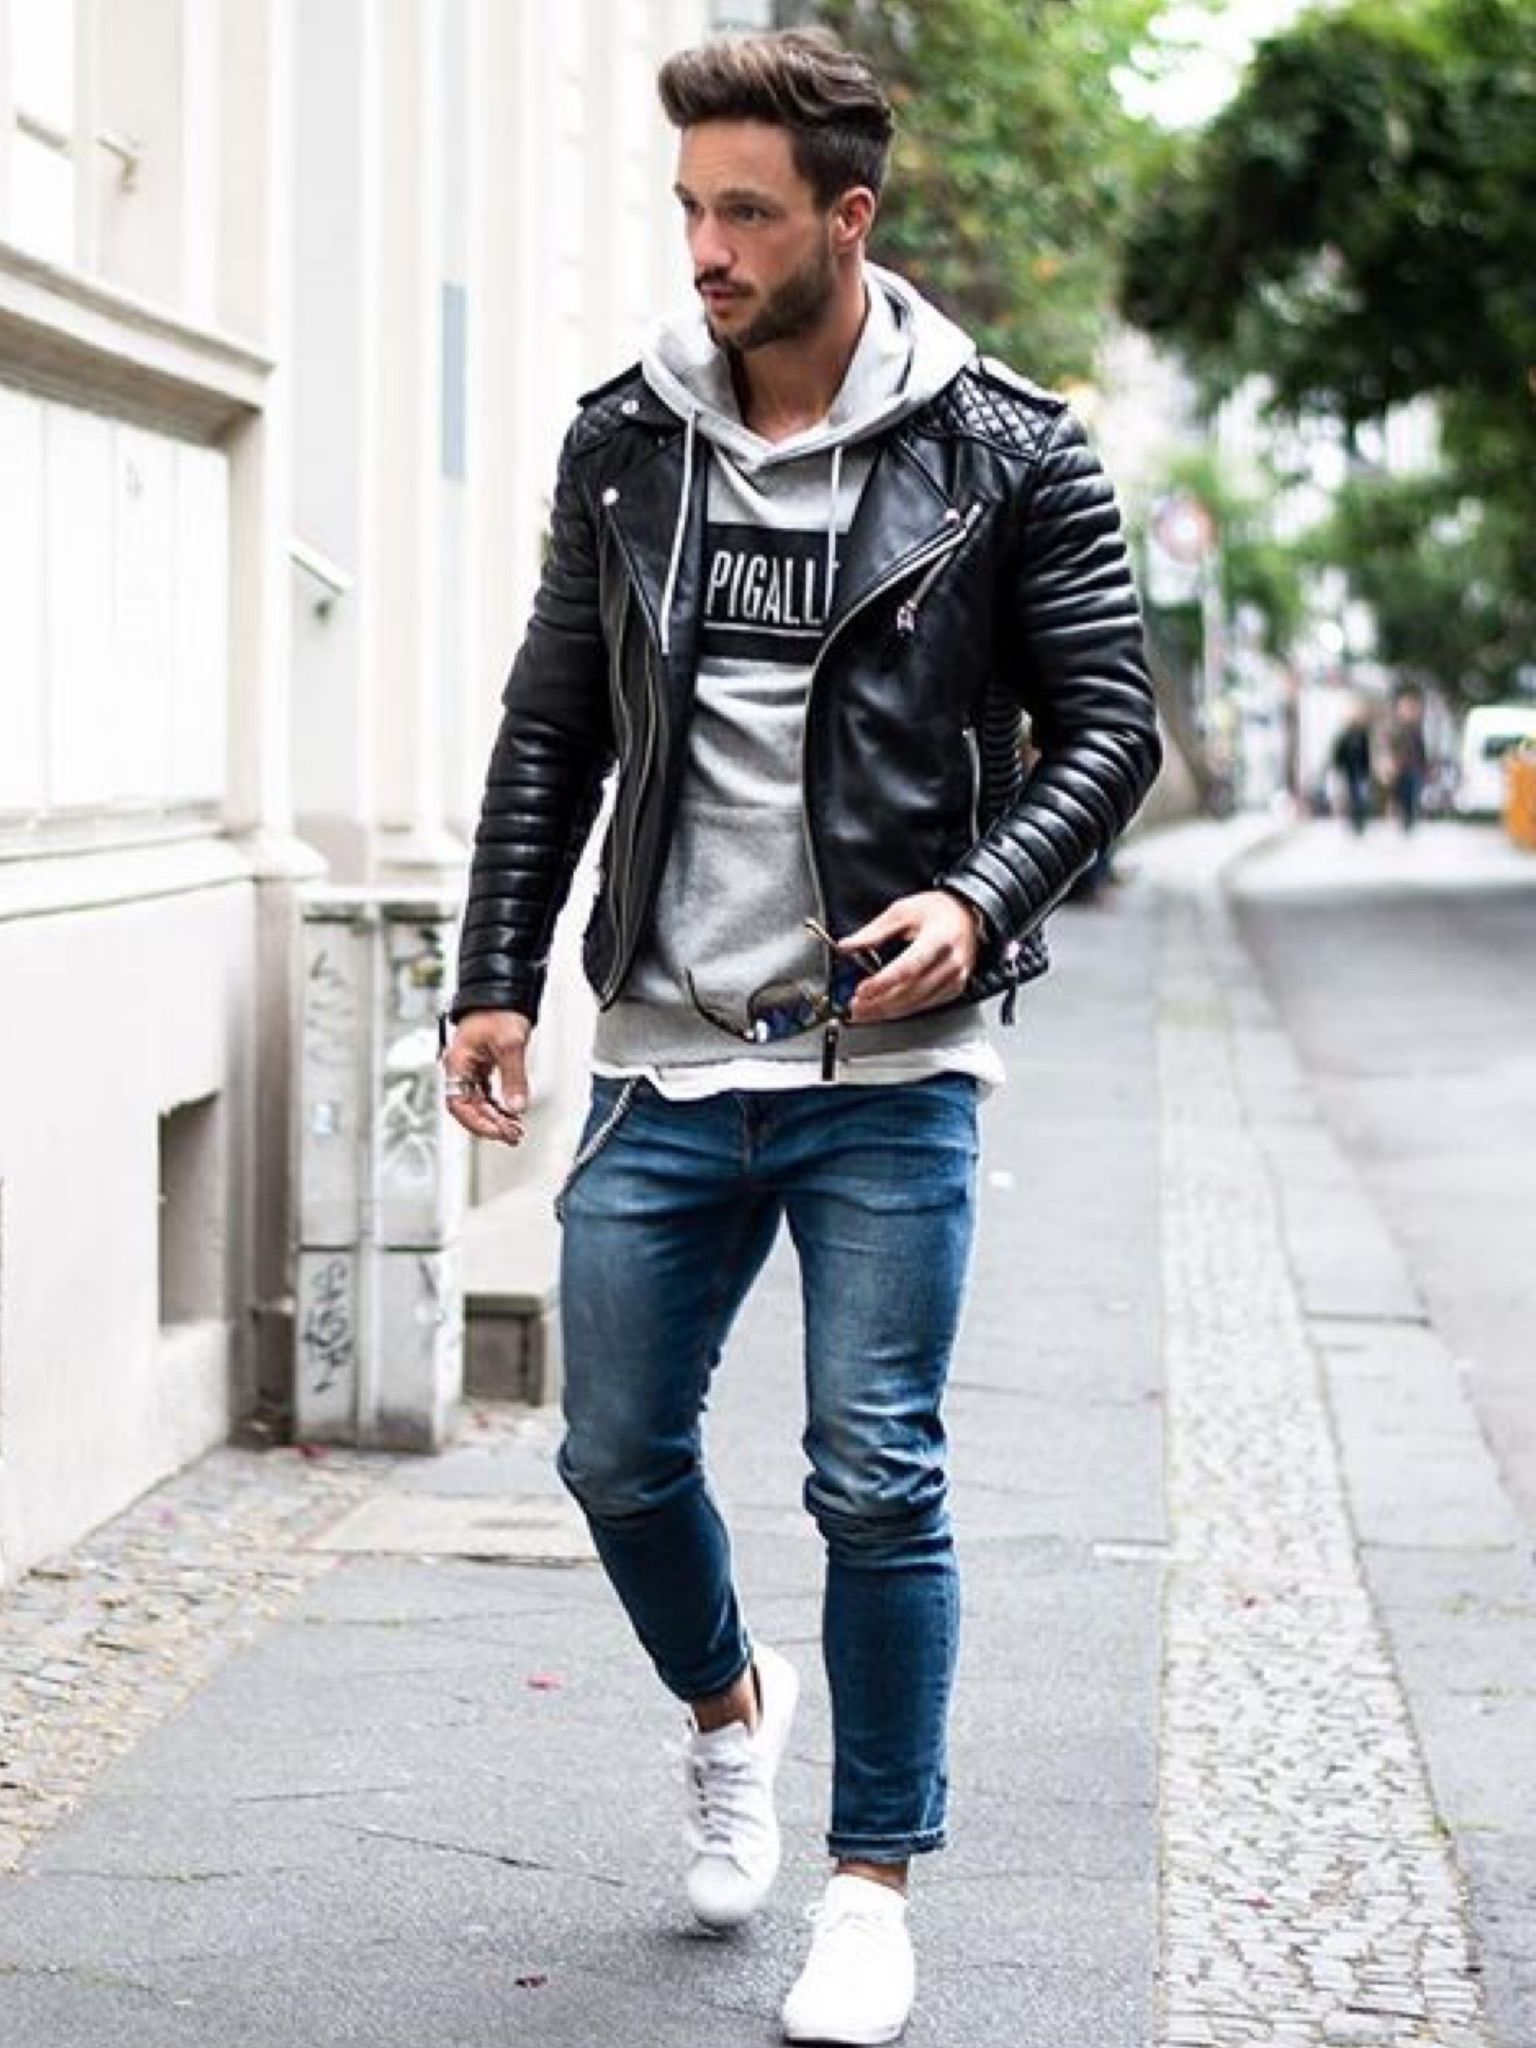 Night Denim Sneakers Layer A Tee Hoodie And Leather Jacket Fashion